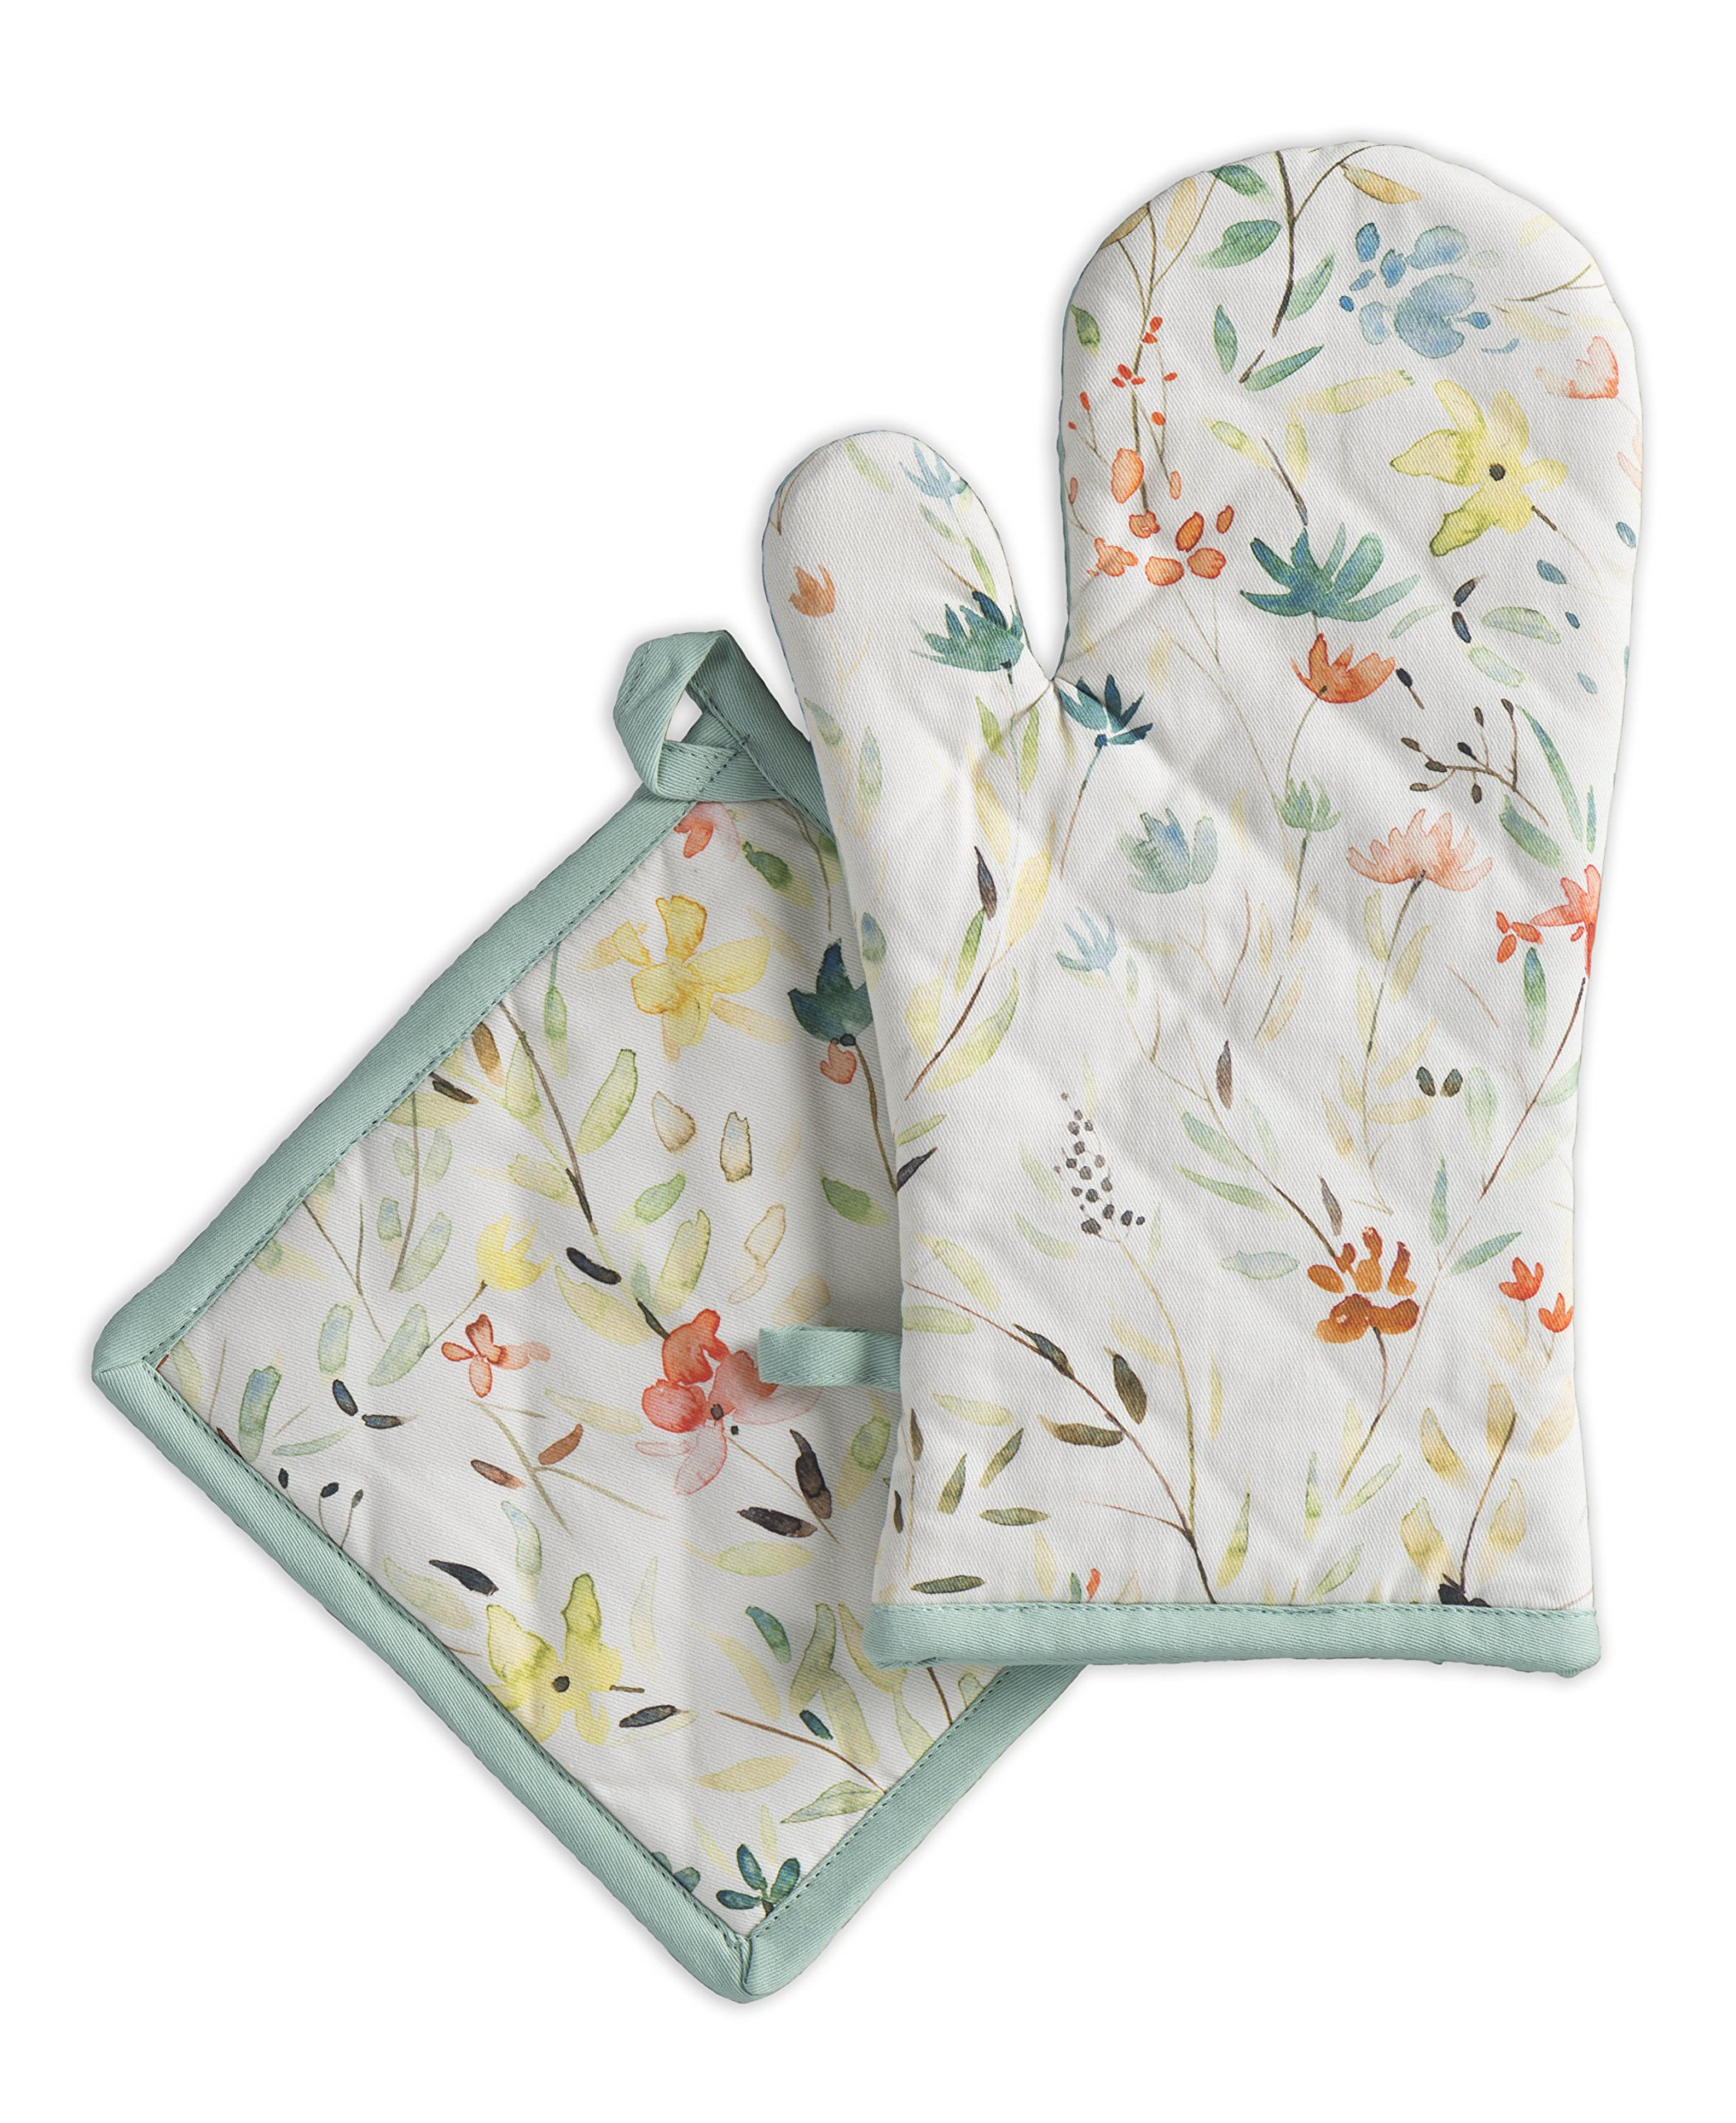 Maison d' Hermine Colmar 100% Cotton Set of Oven Mitt (7.5 Inch by 13 Inch) and Pot Holder (8 Inch by 8 Inch) by Maison d' Hermine